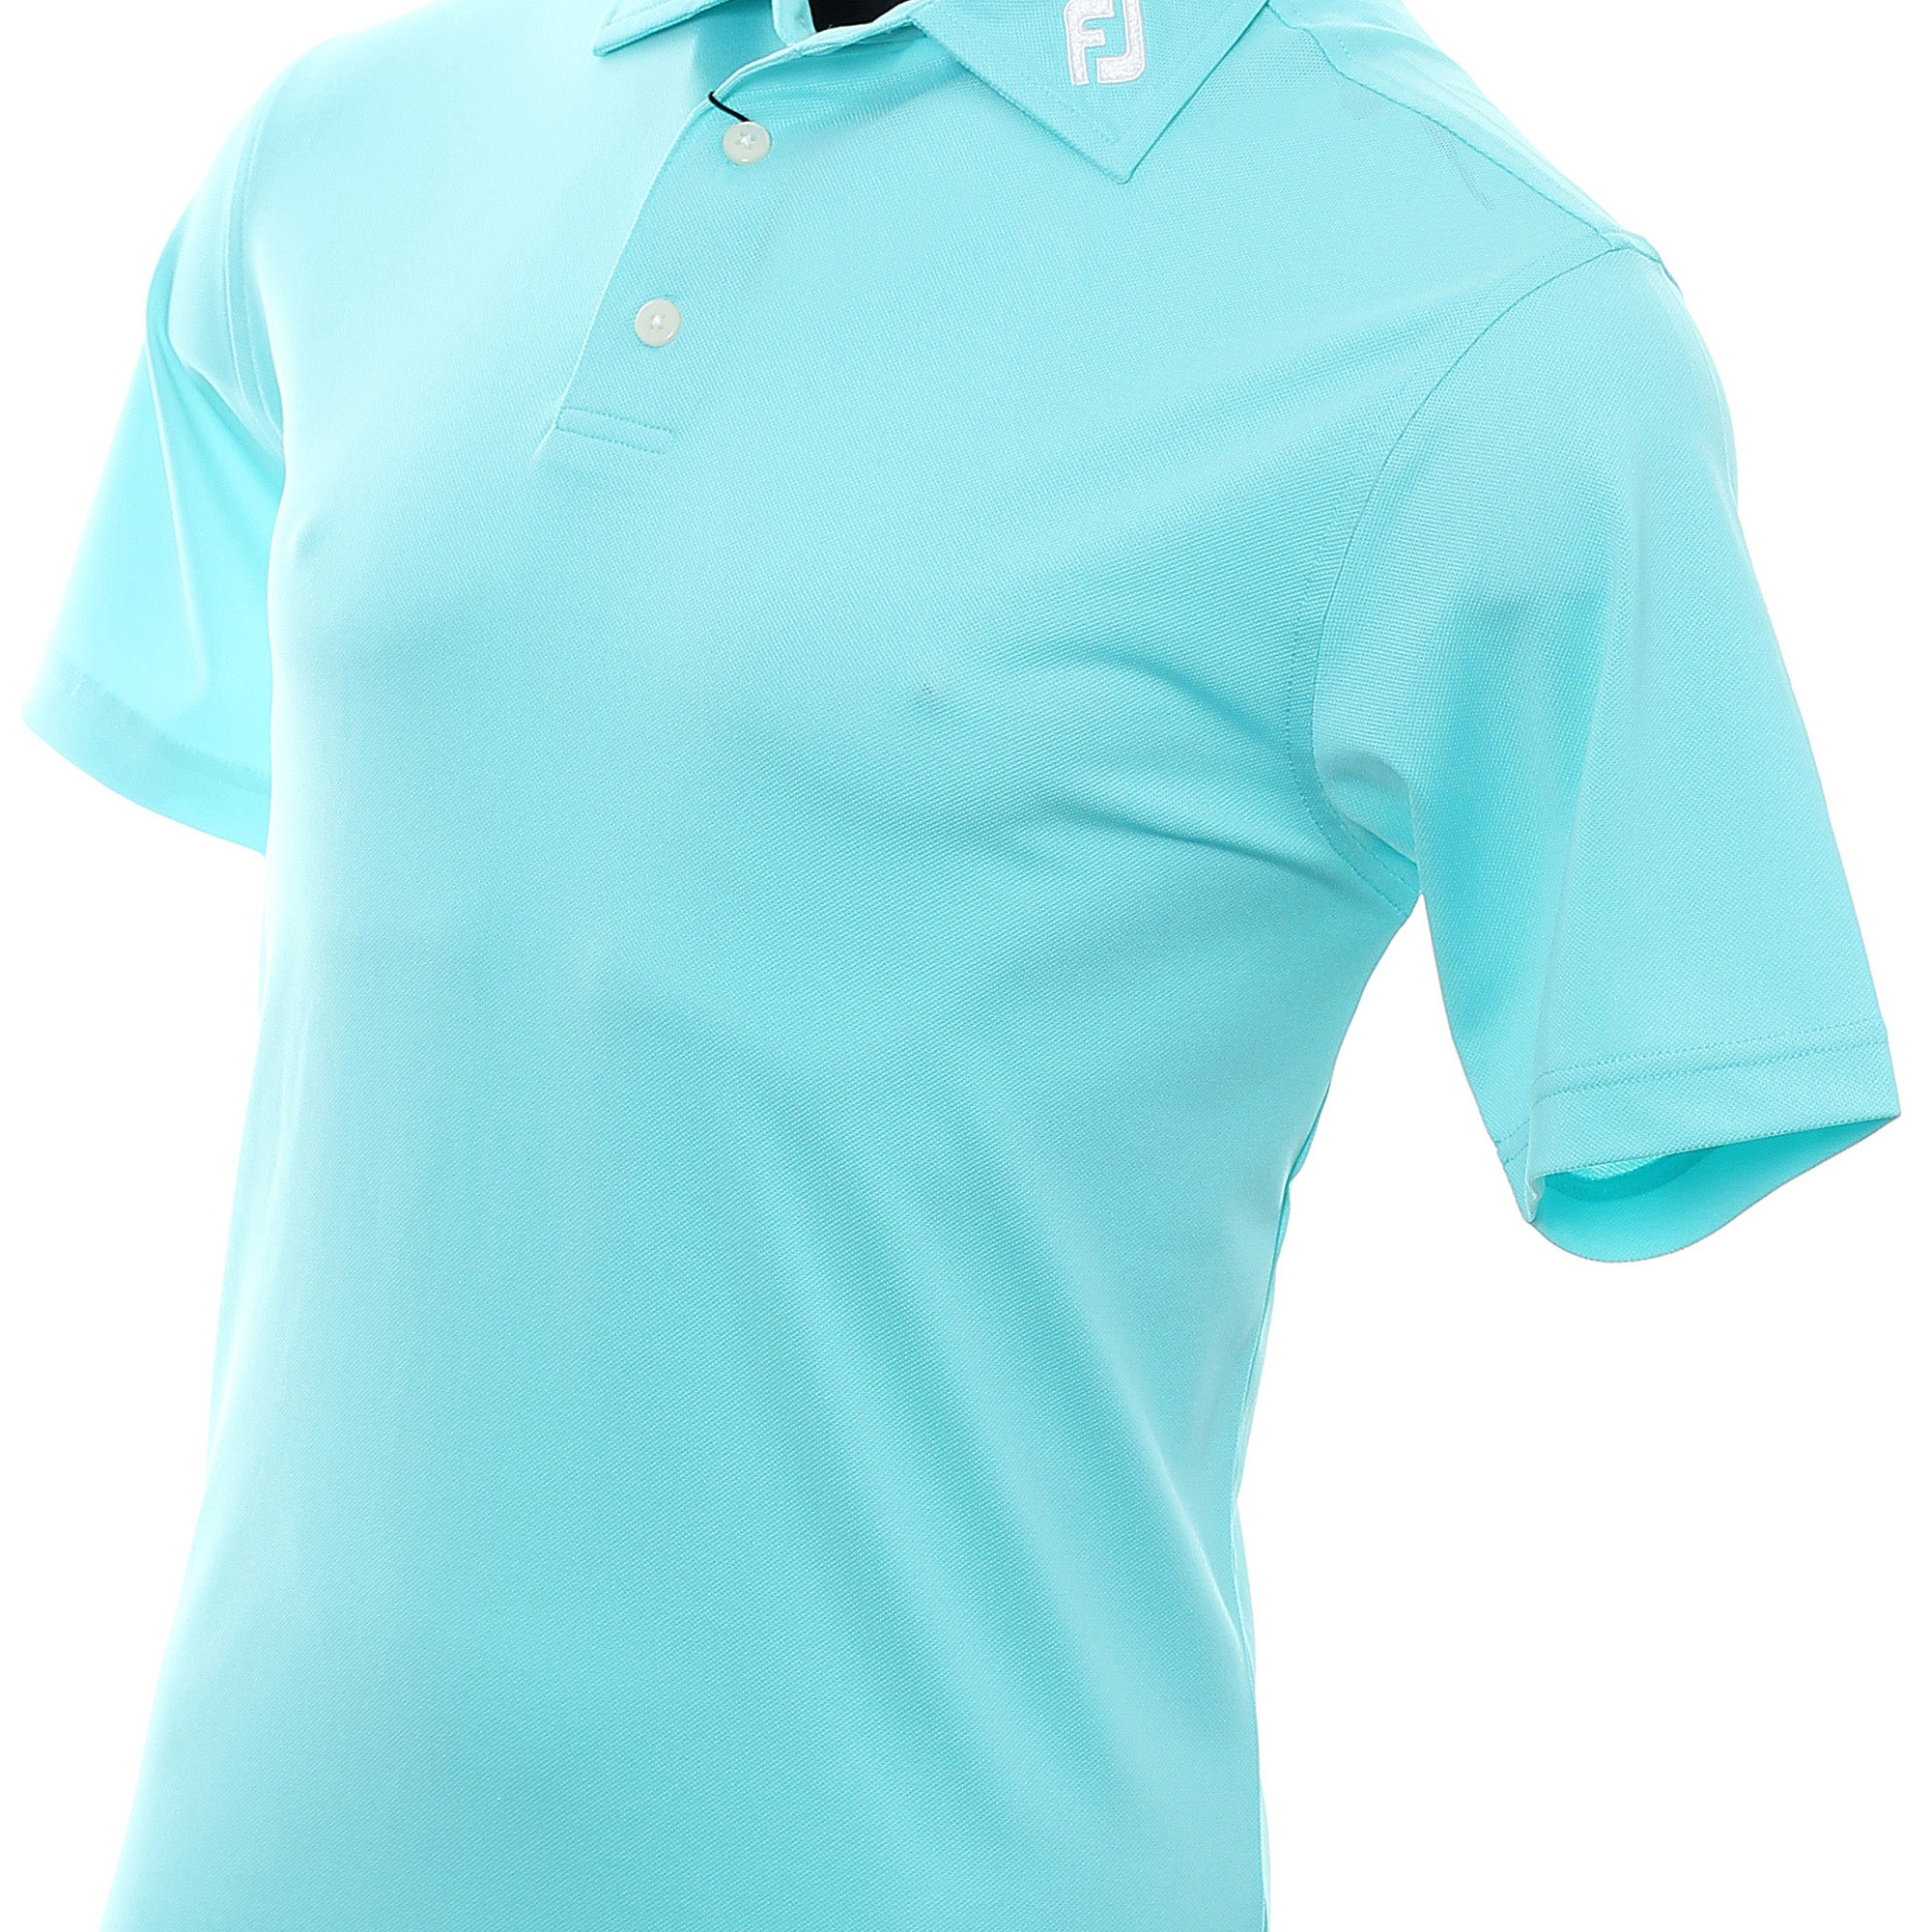 FootJoy Stretch Pique Solid Golf Shirt 90069